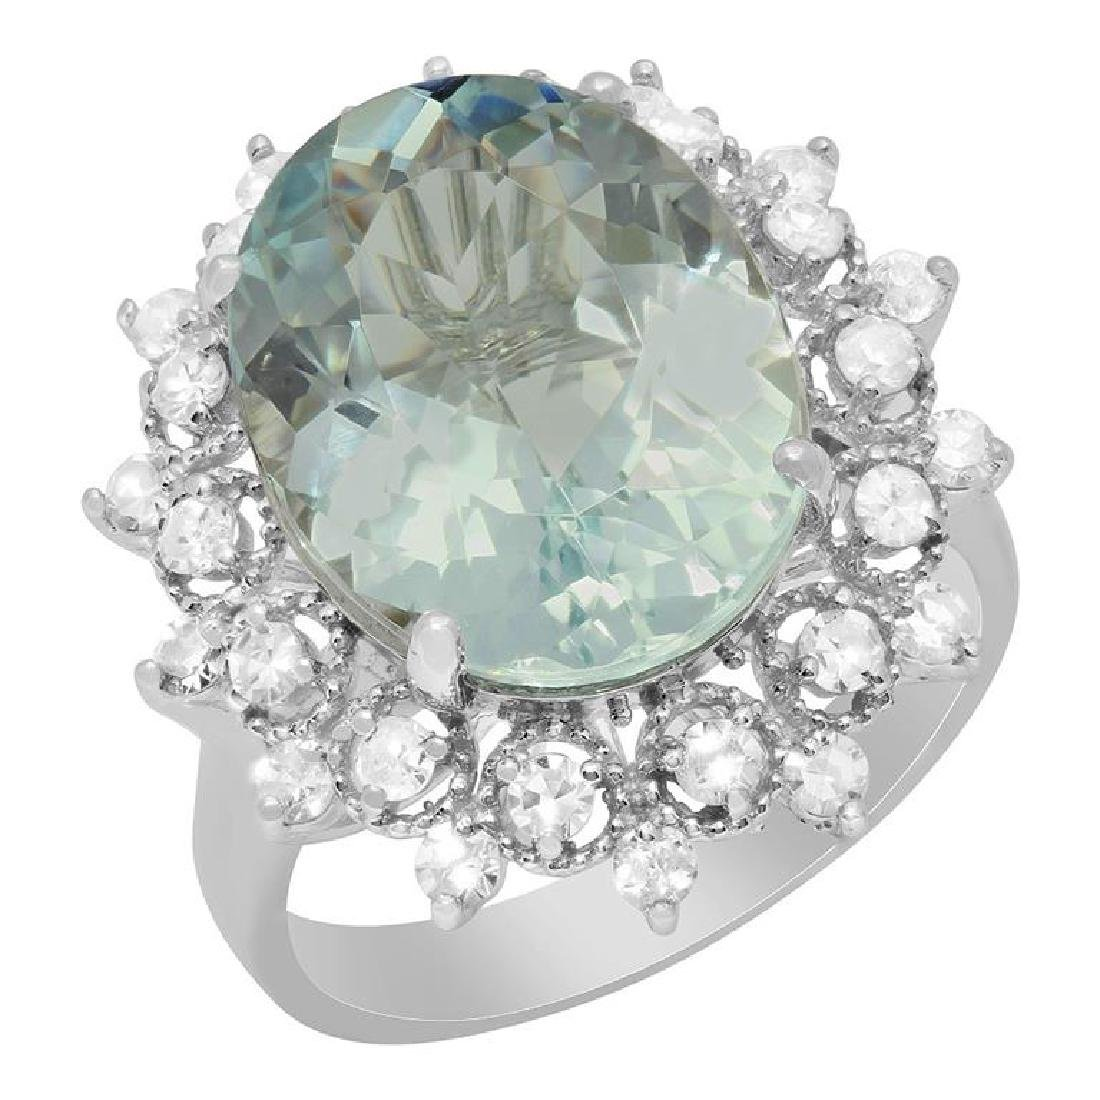 14k White Gold 7.06ct Aquamarine 0.74ct Diamond Ring